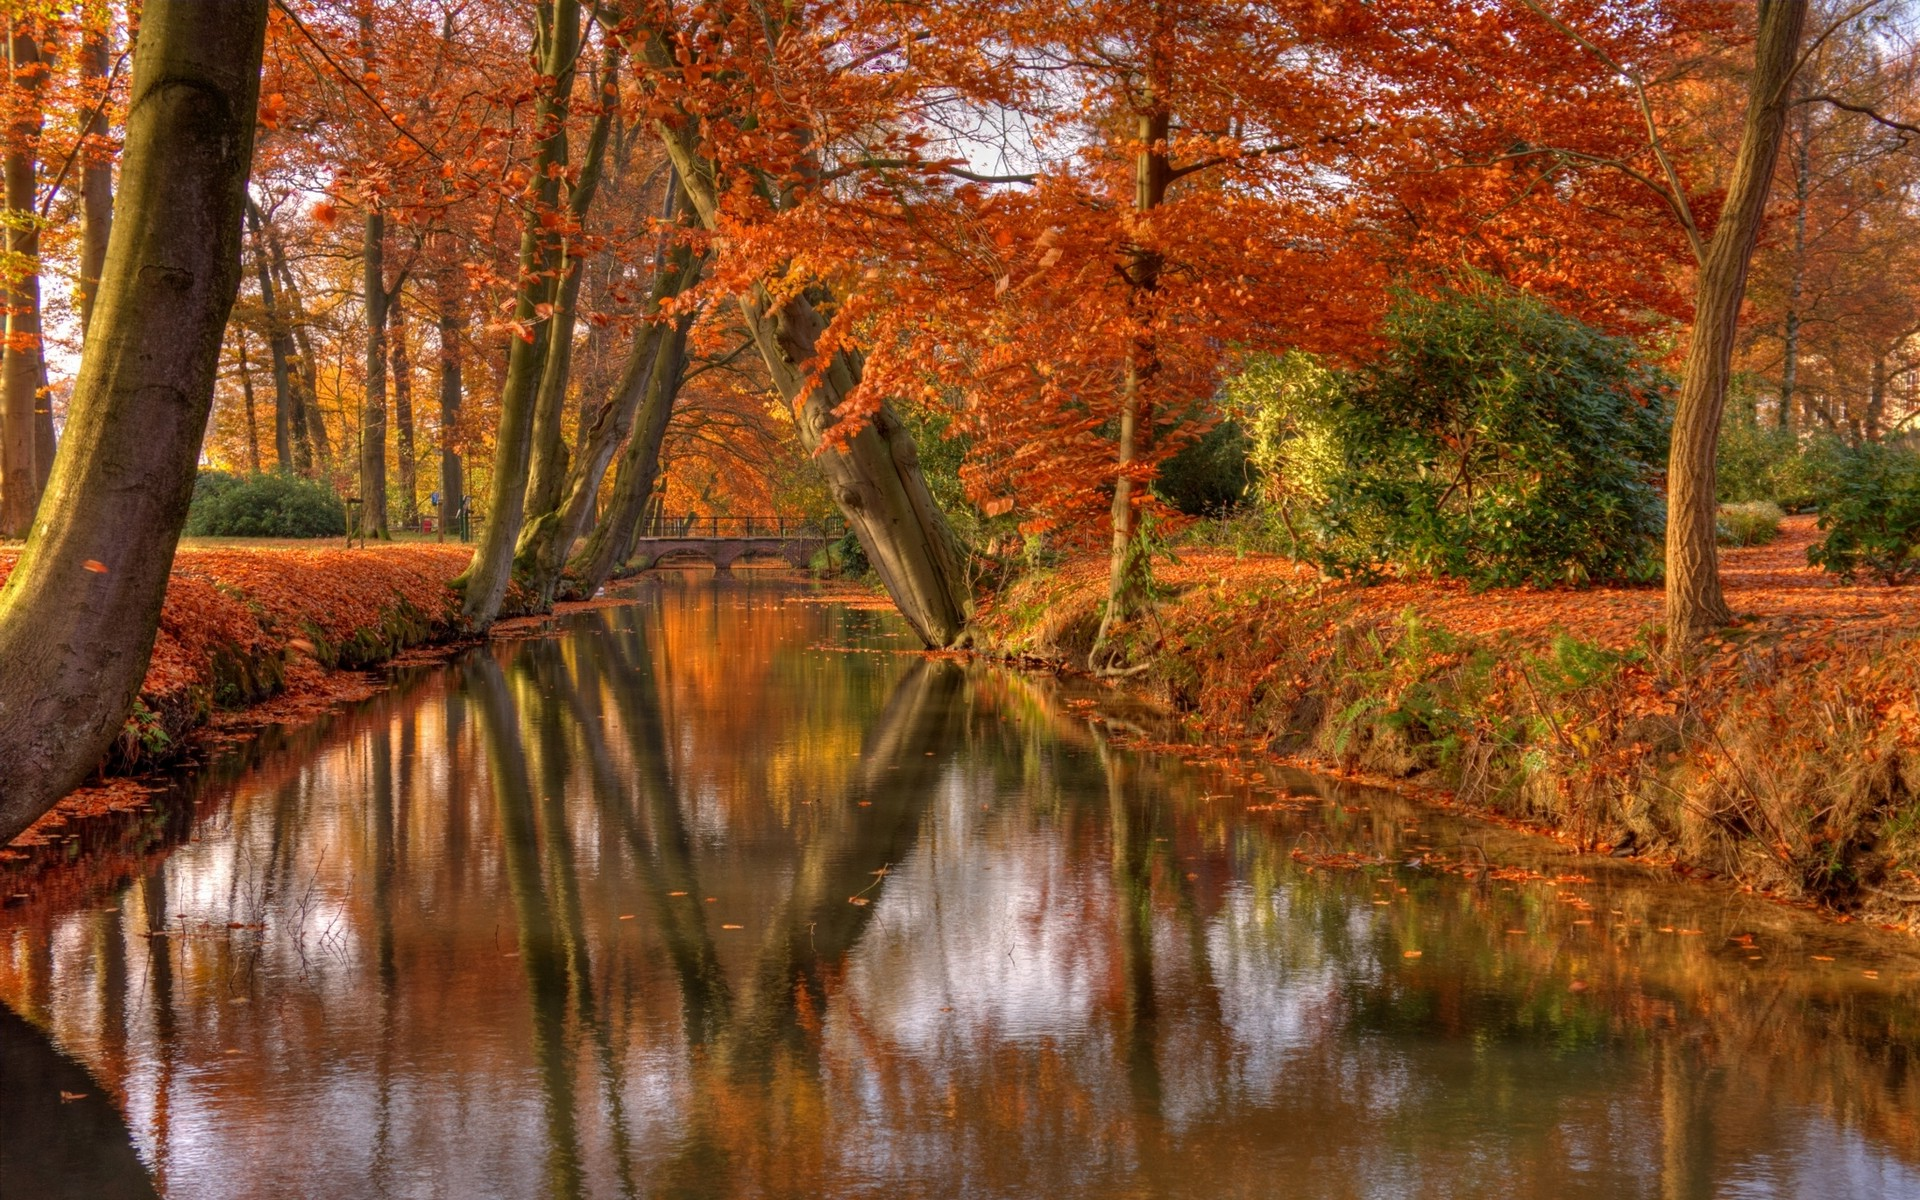 Fall Foliage Wallpaper 1920x1080 Nature Landscape Park Shrubs Trees Leaves Canal